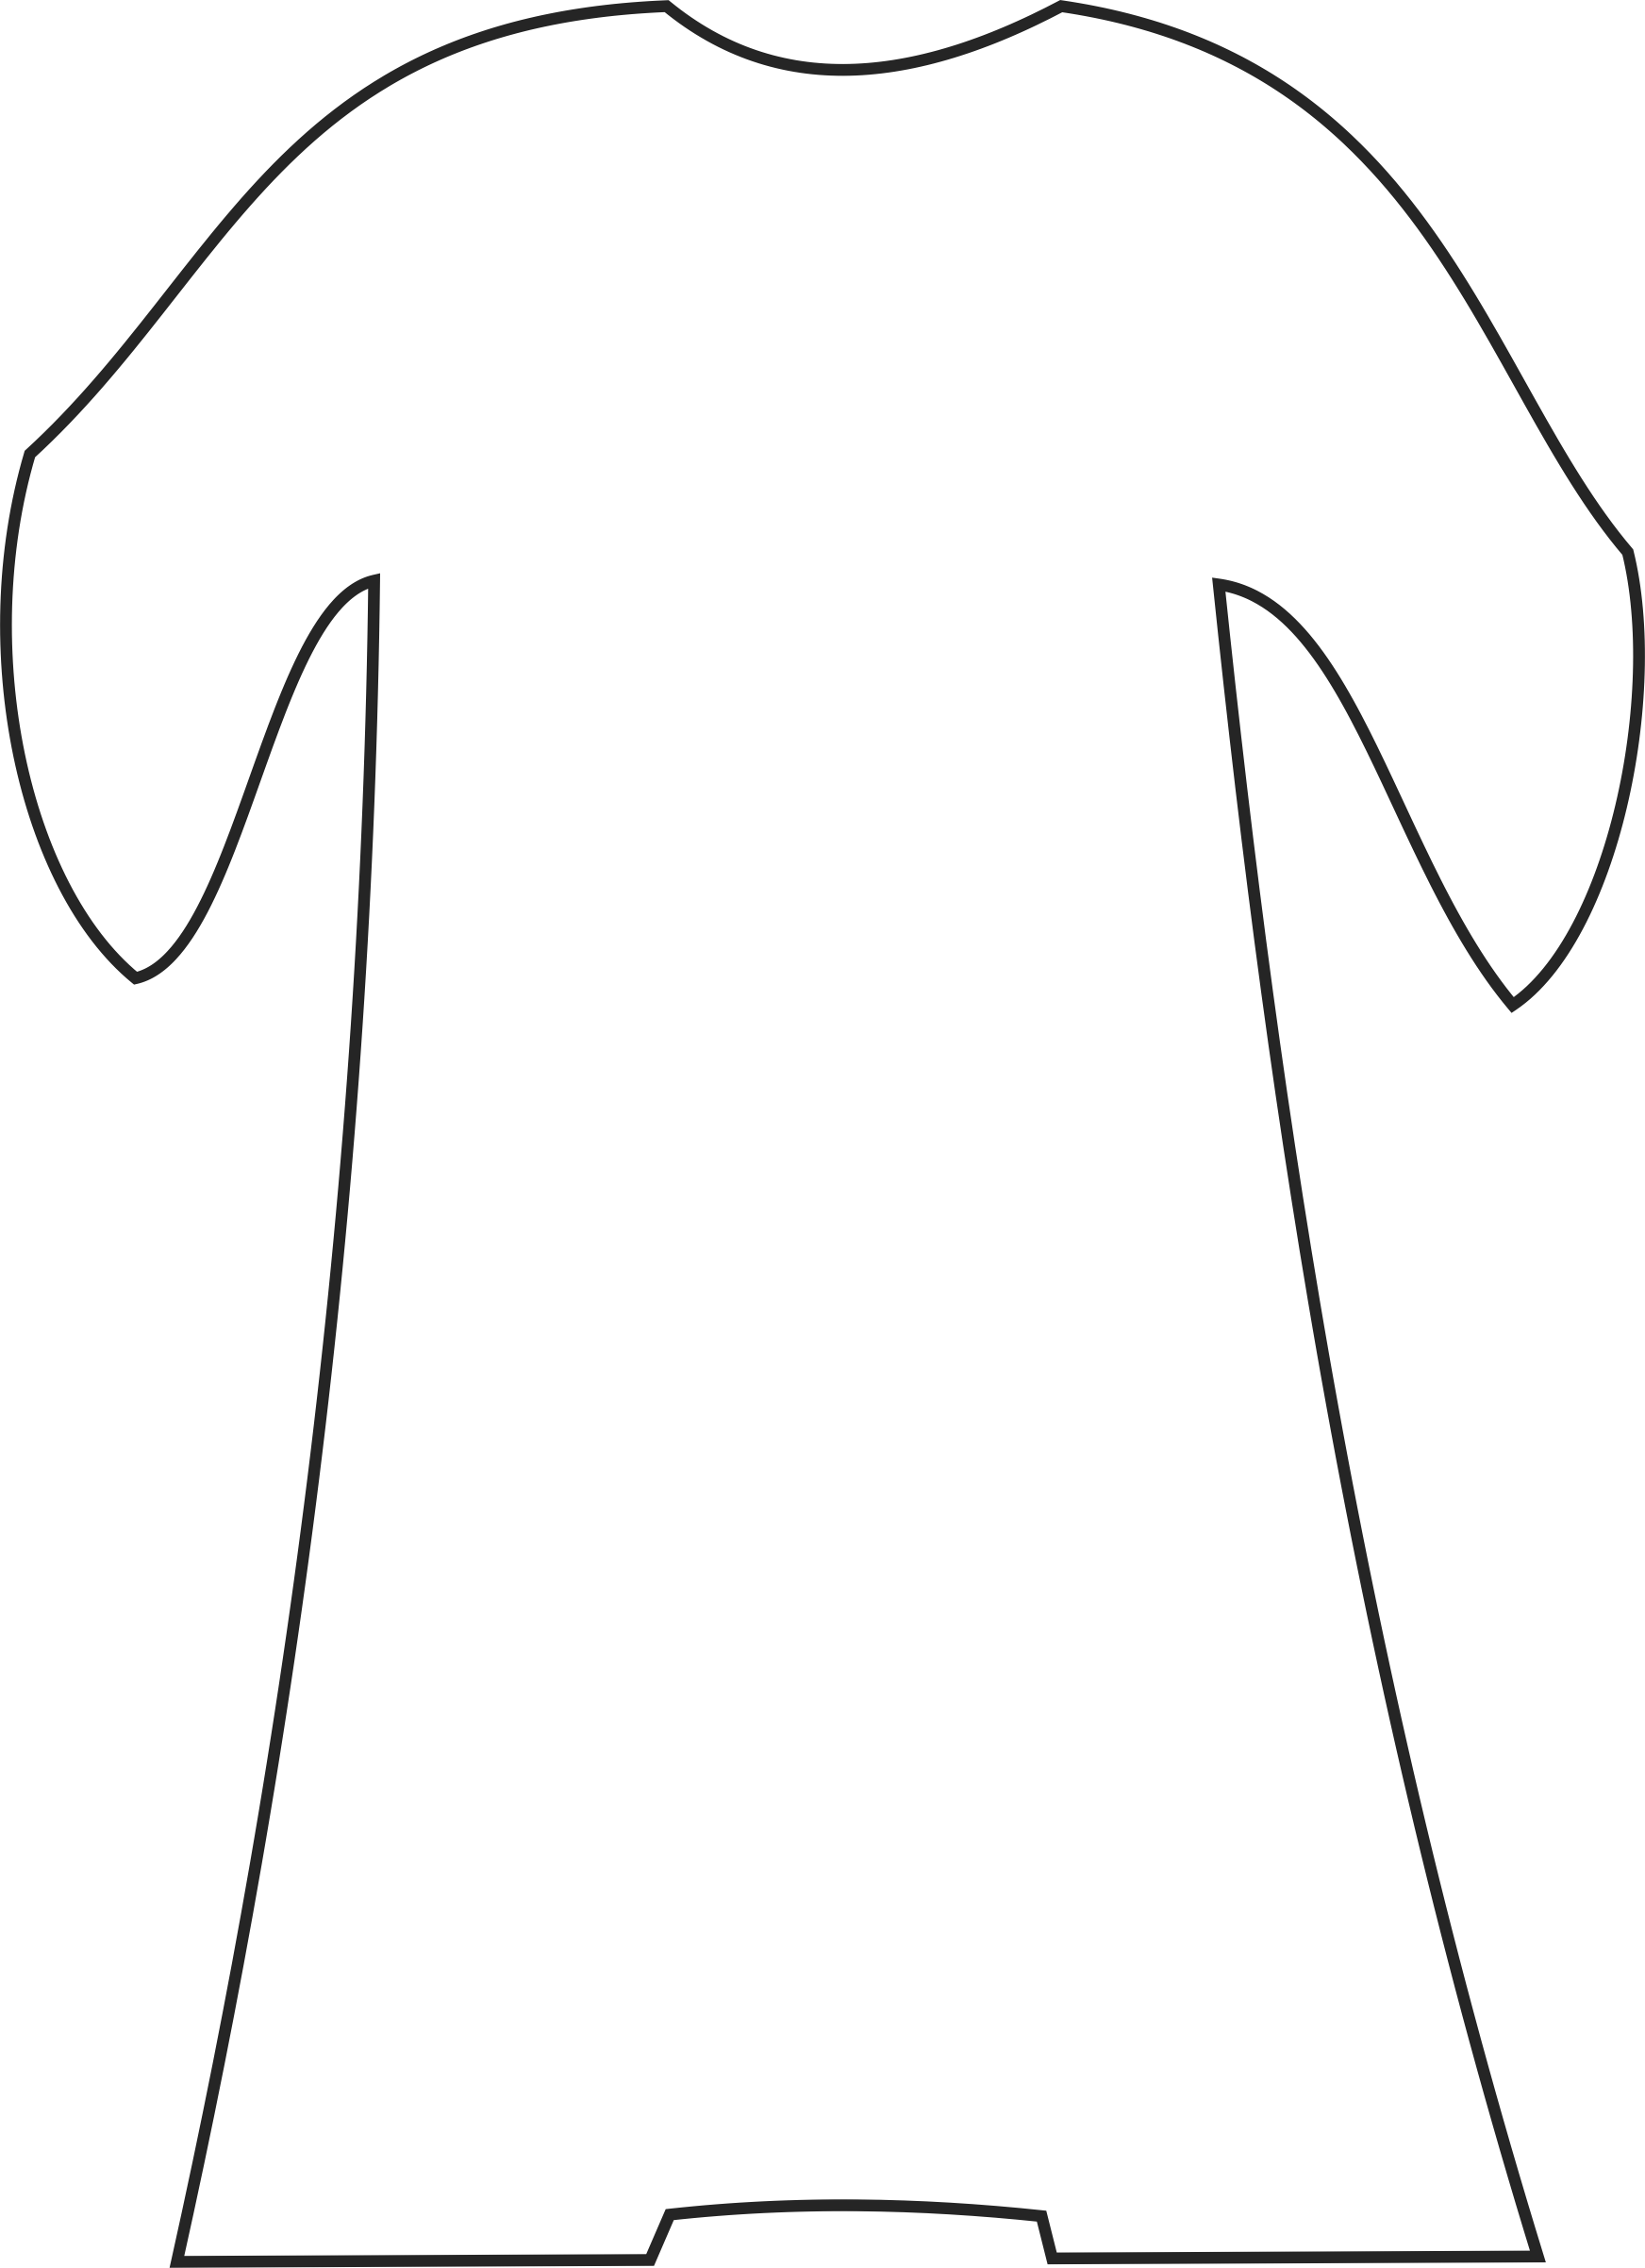 Joseph Coat Of Many Colors Coloring Page Coloring Pages Coloring Page Coat Of Many Colors